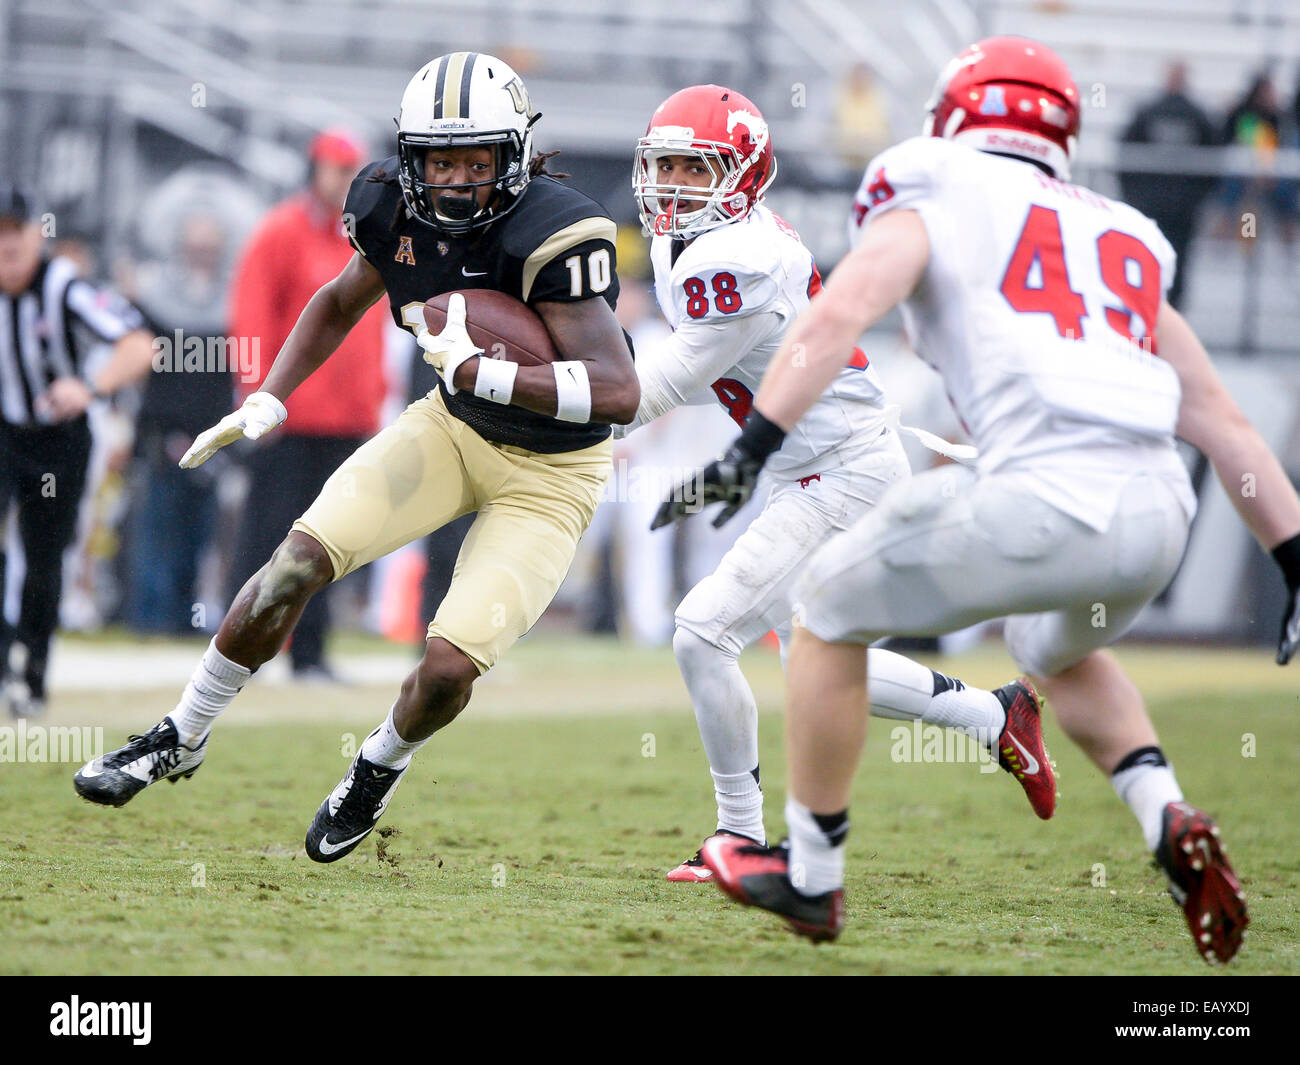 Shaquill Griffin Stock Photos   Shaquill Griffin Stock Images - Alamy 2aa01adcf